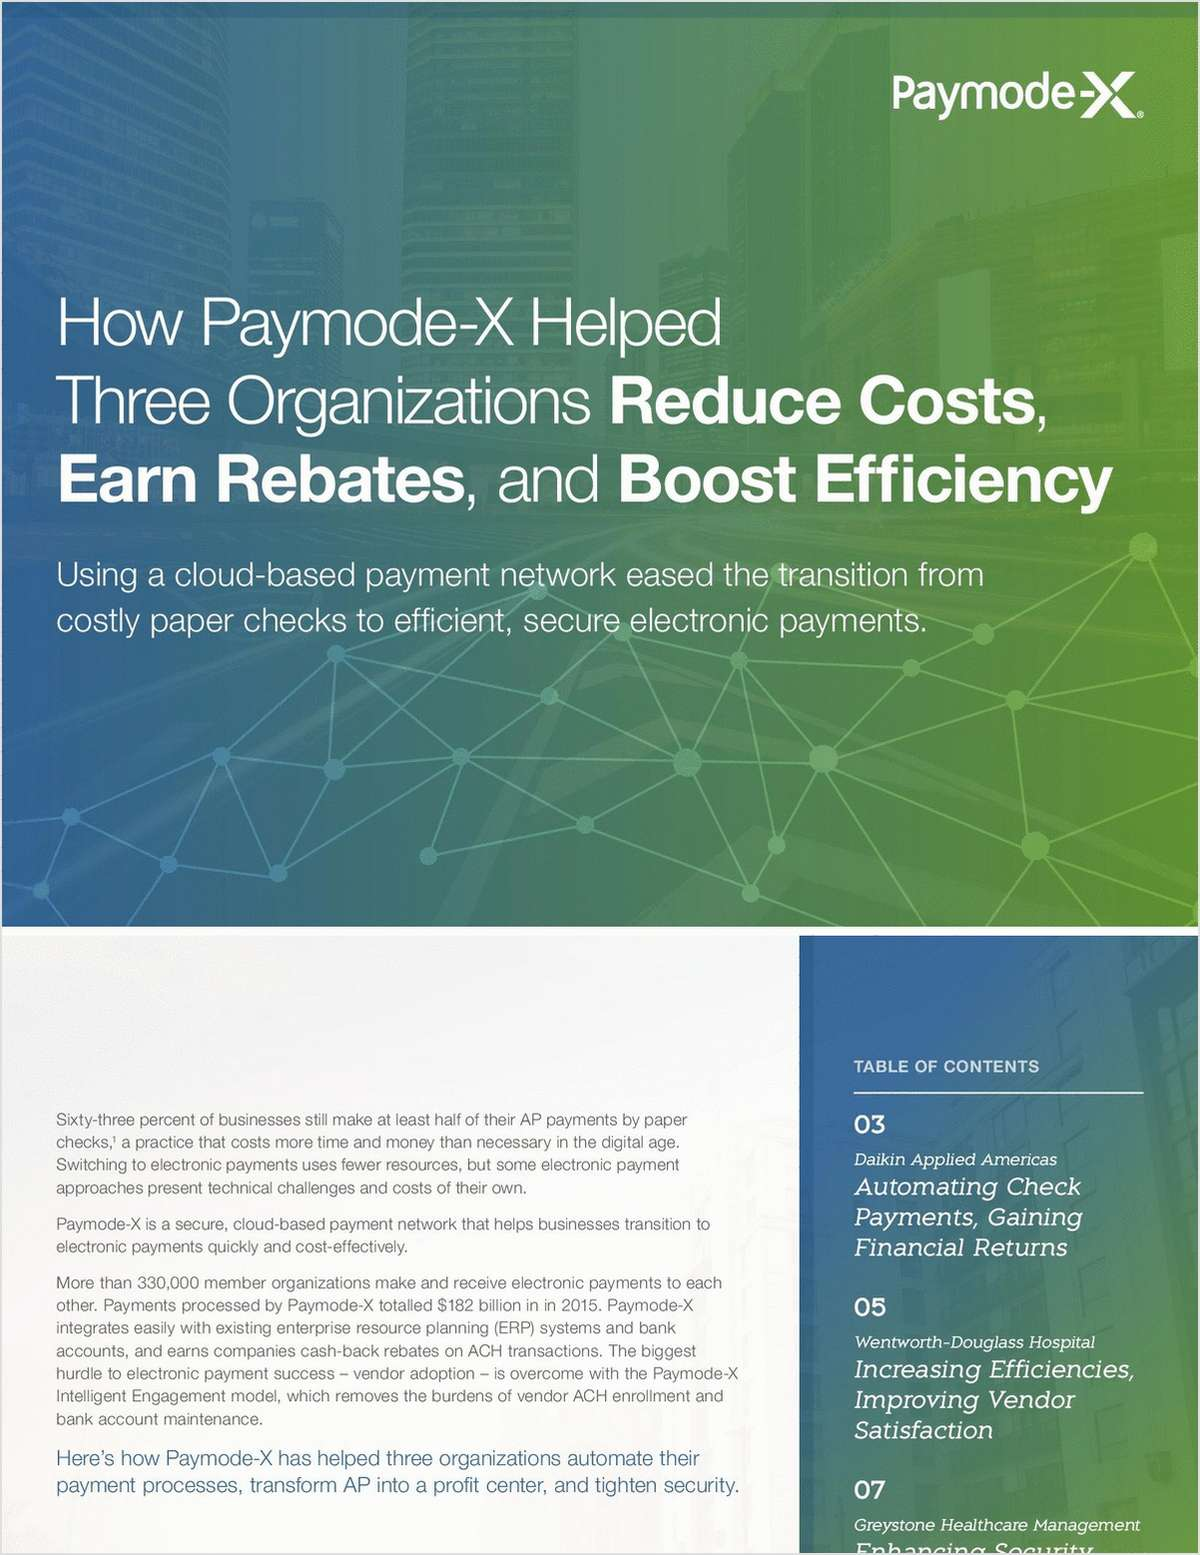 How AP Departments Reduce Costs, Earn Rebates, and Boost Efficiency with Payment Networks